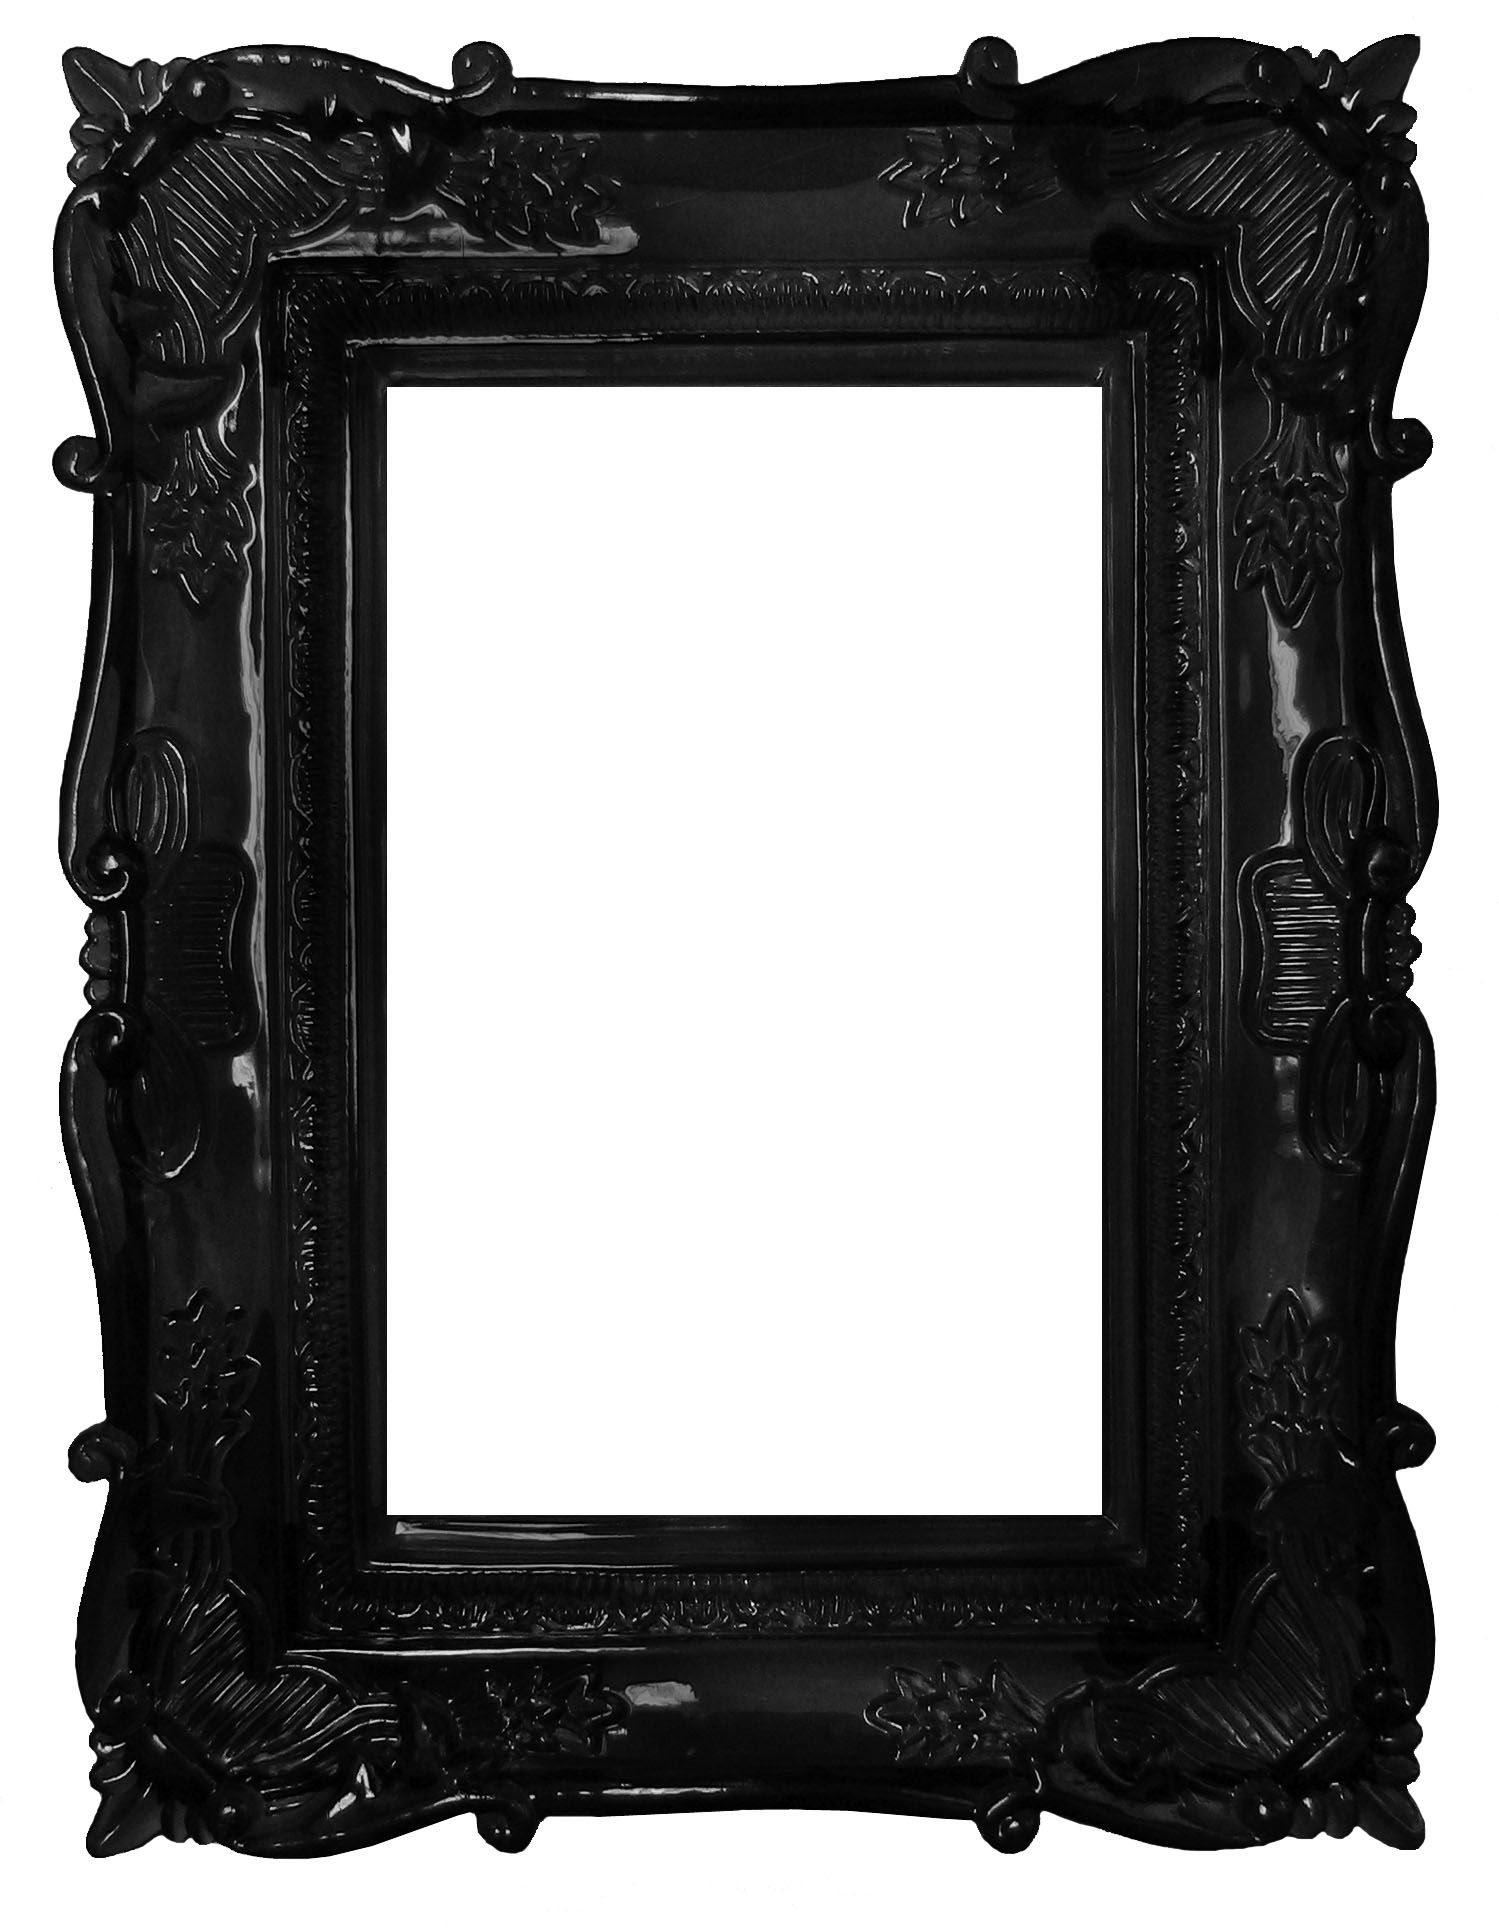 black frame to put guestbook in please leave a message that will stay on our hearts foreverplease sign a heart and leave a message that will stay